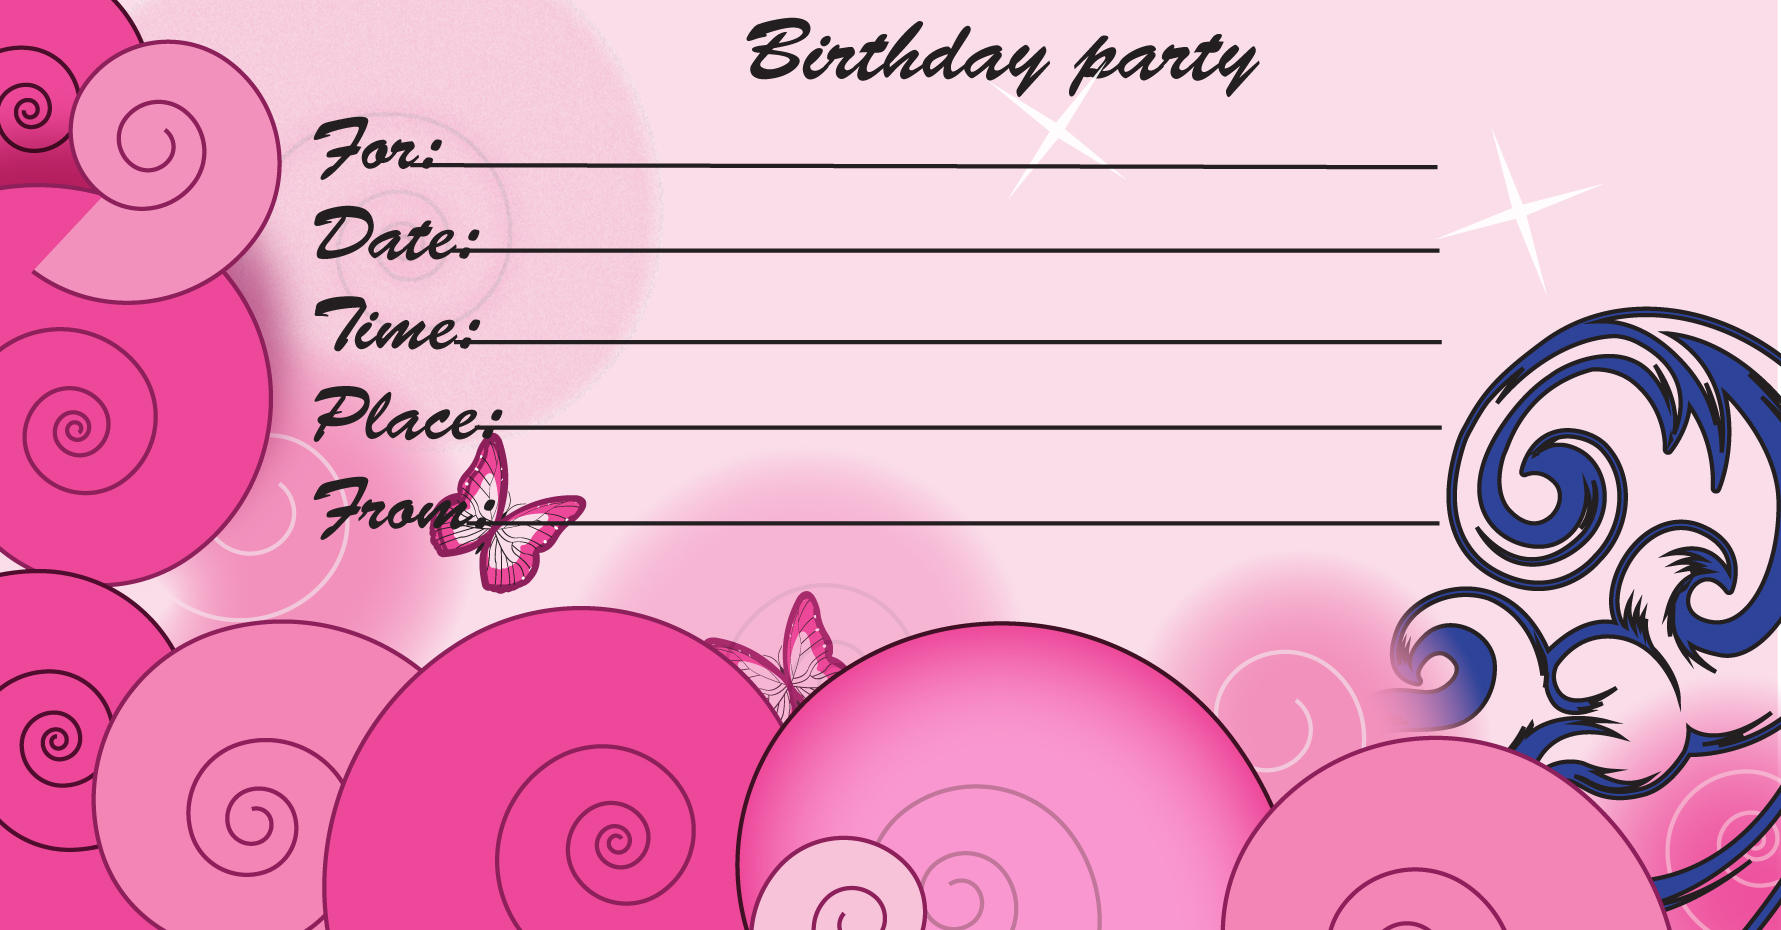 10th birthday invitation cards free printables ; birthday-invitations-free-printable-birthday-invitation-template-with-pink-color-birthday-party-invitation-cards-and-templates